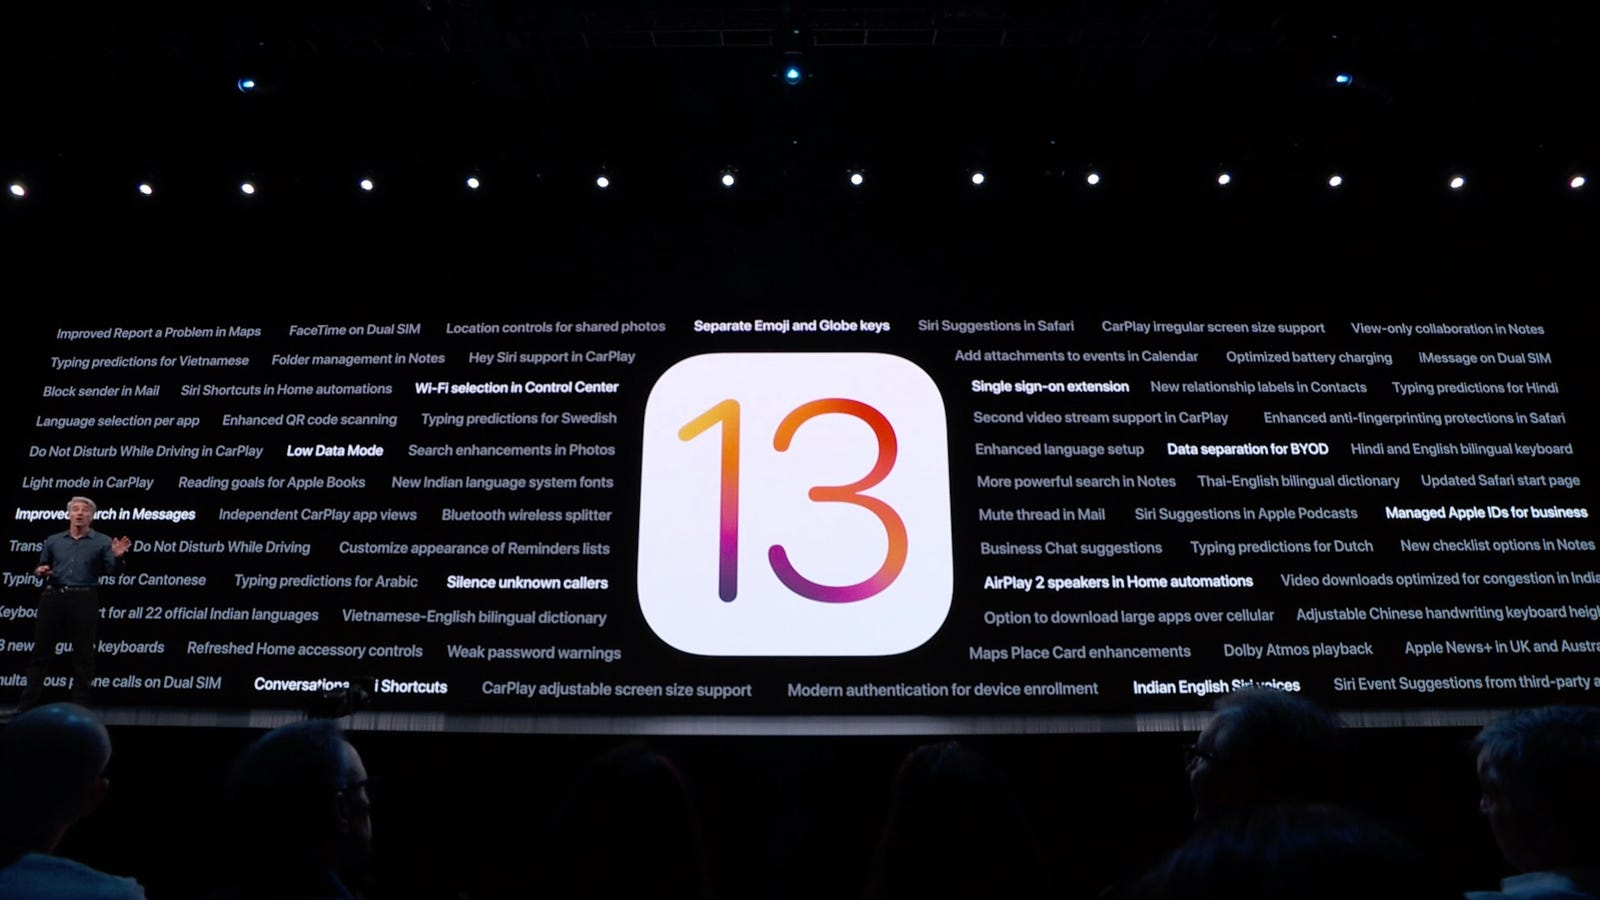 All the Big iOS 13 Changes Apple Announced at WWDC 19 - RapidAPI